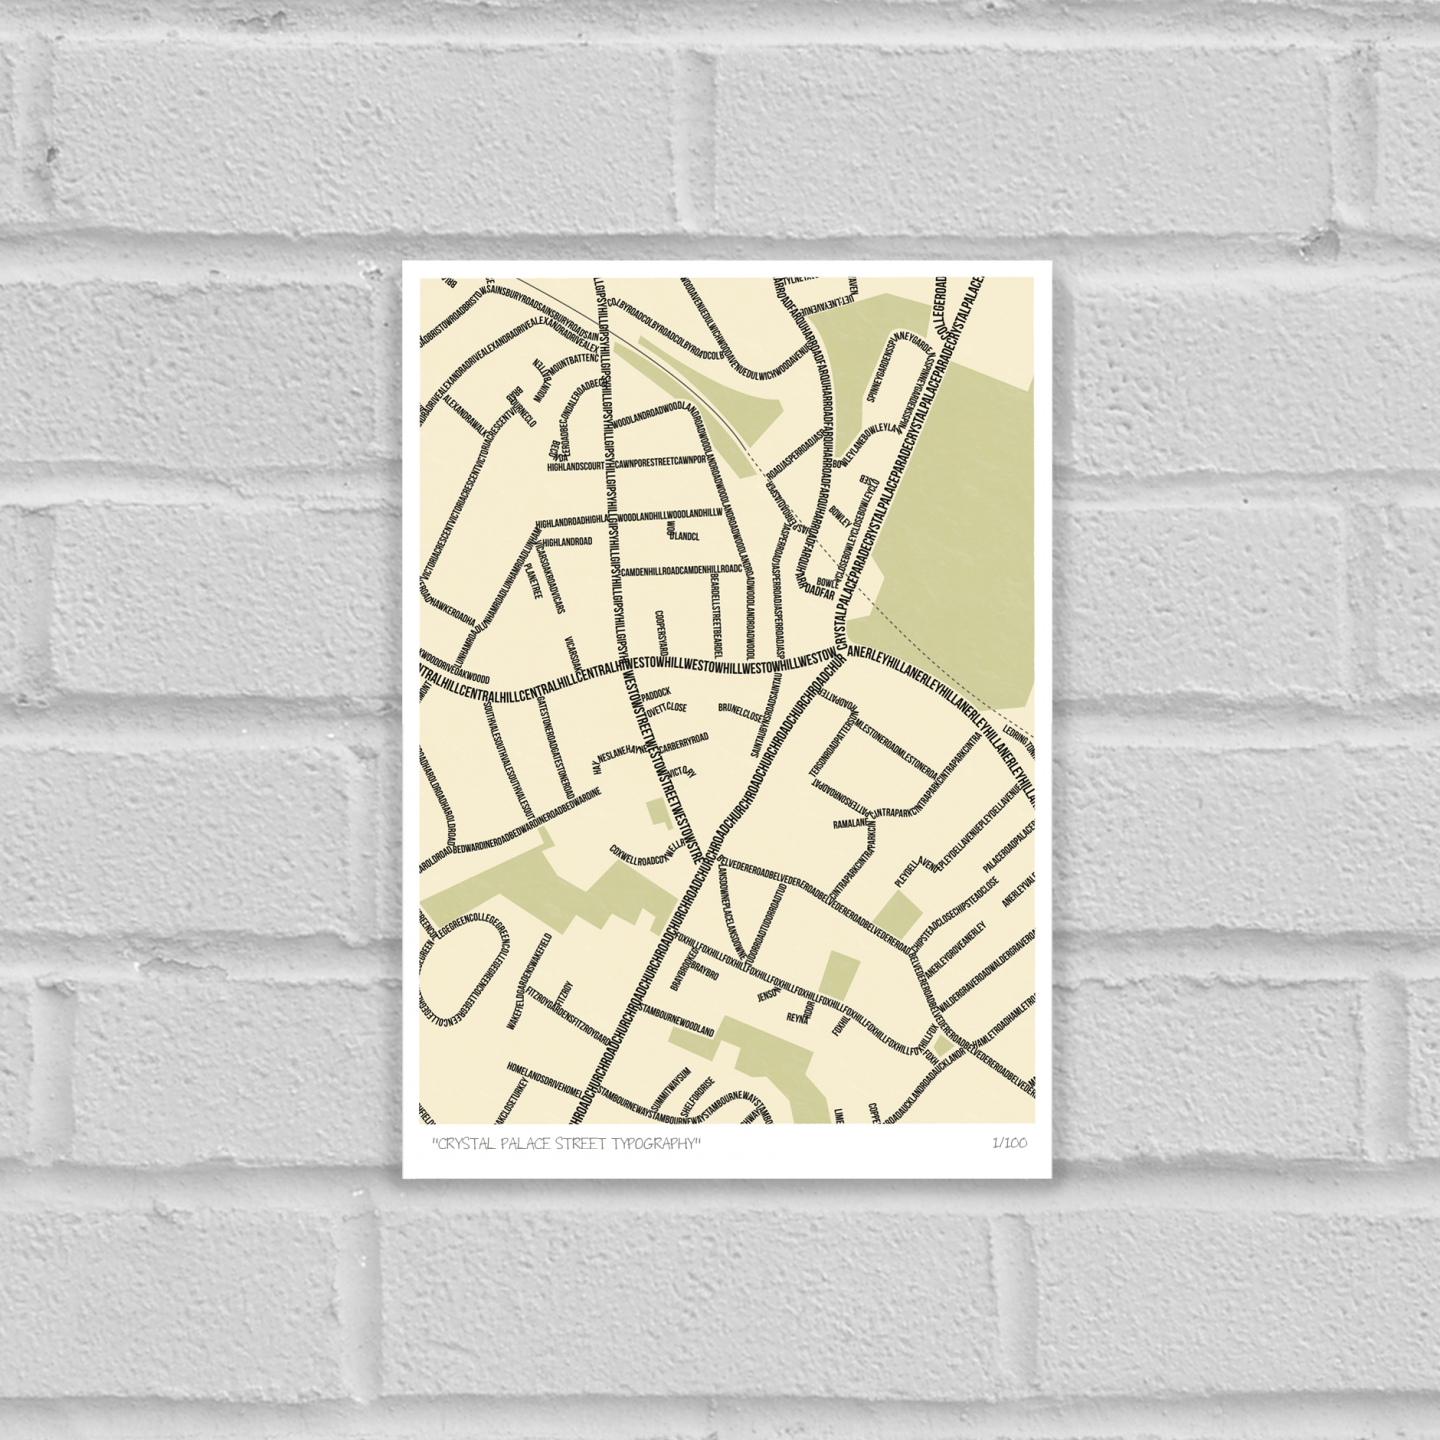 Crystal Palace Street Typography Map Art Poster Print Unframed